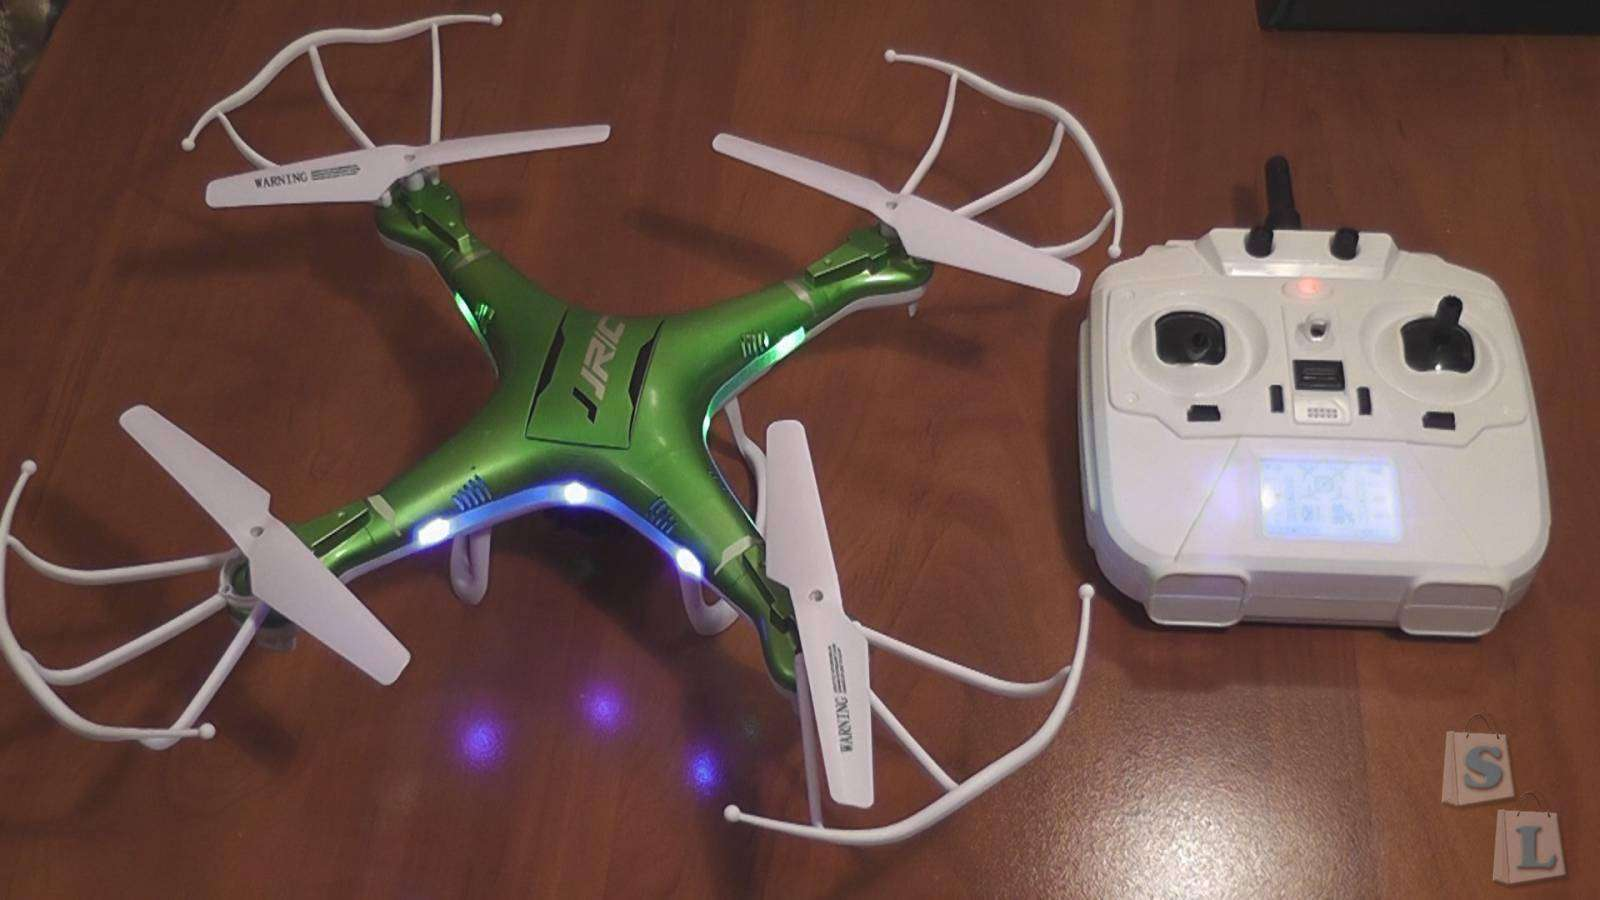 Banggood: JJRC H5P 2.4GHz, 4Ch, 6 Axis Gyro, RC Quadcopter with Headless mode and 2MP Camera (RTF) + Mobius